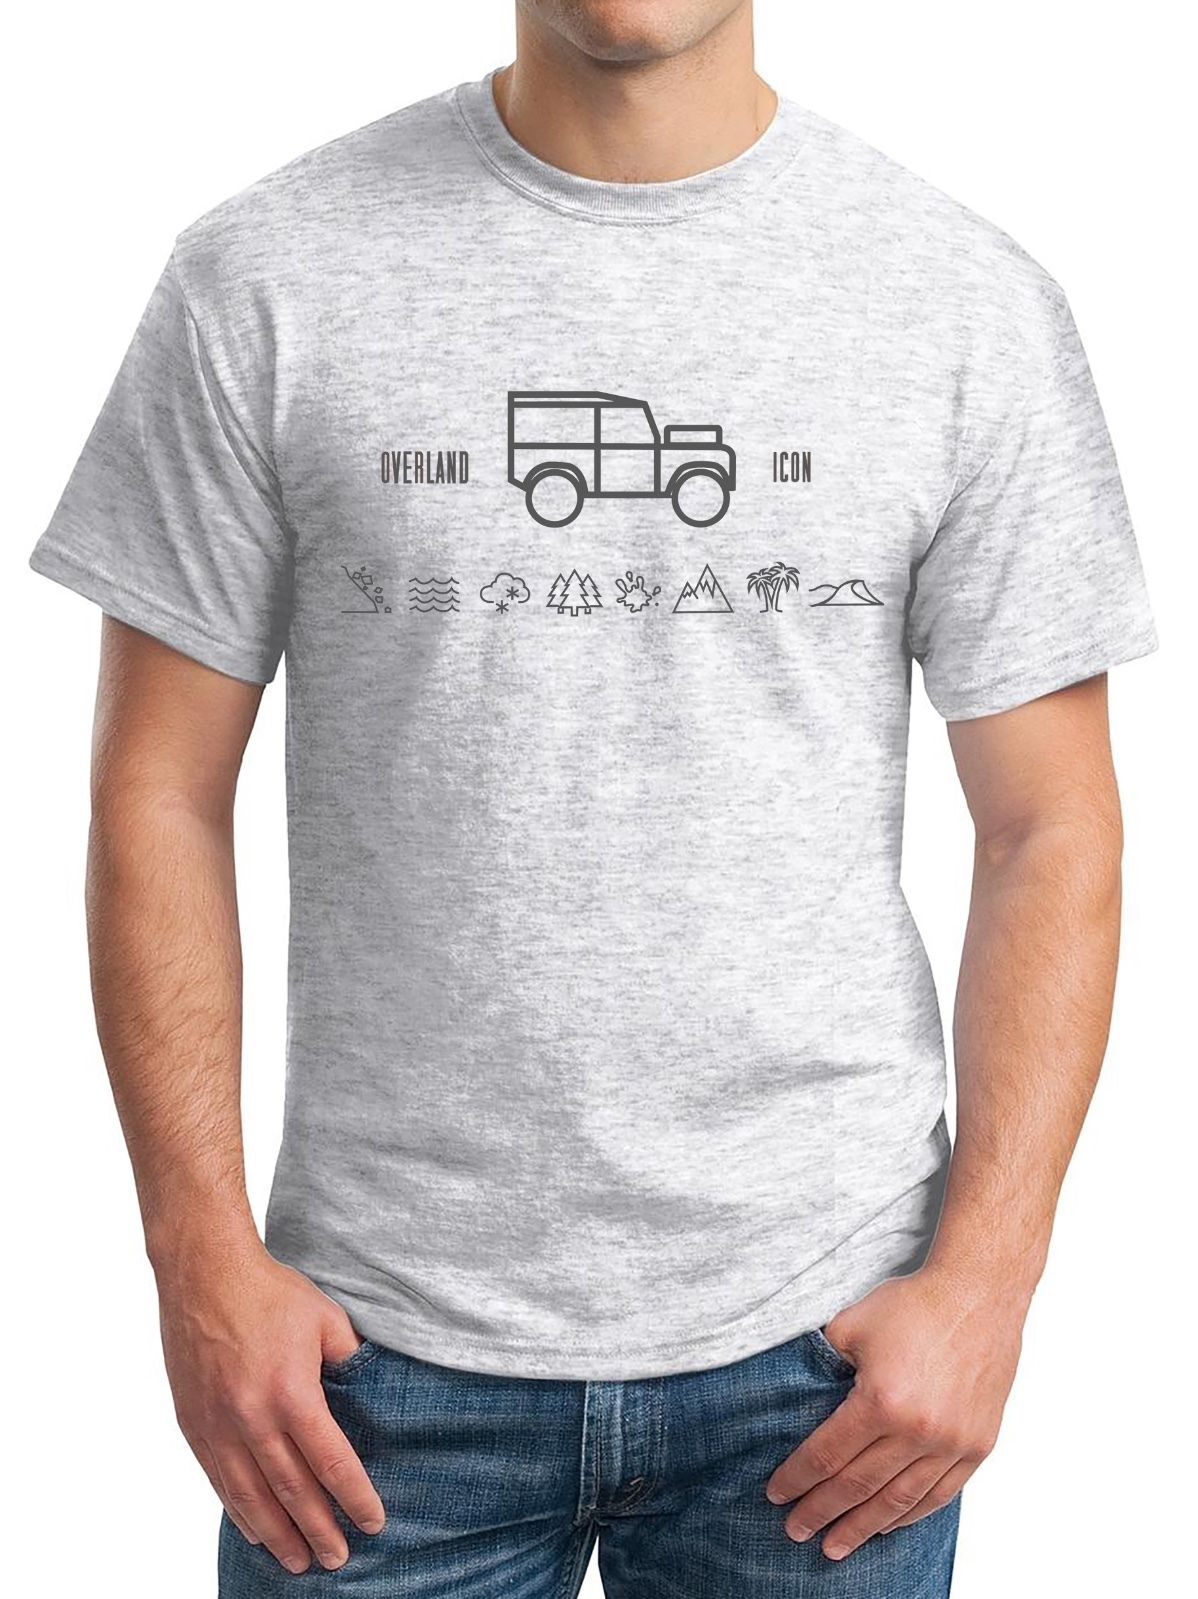 Land Rover Series Defender t-shirt - Overland Icon - Sporter Grey